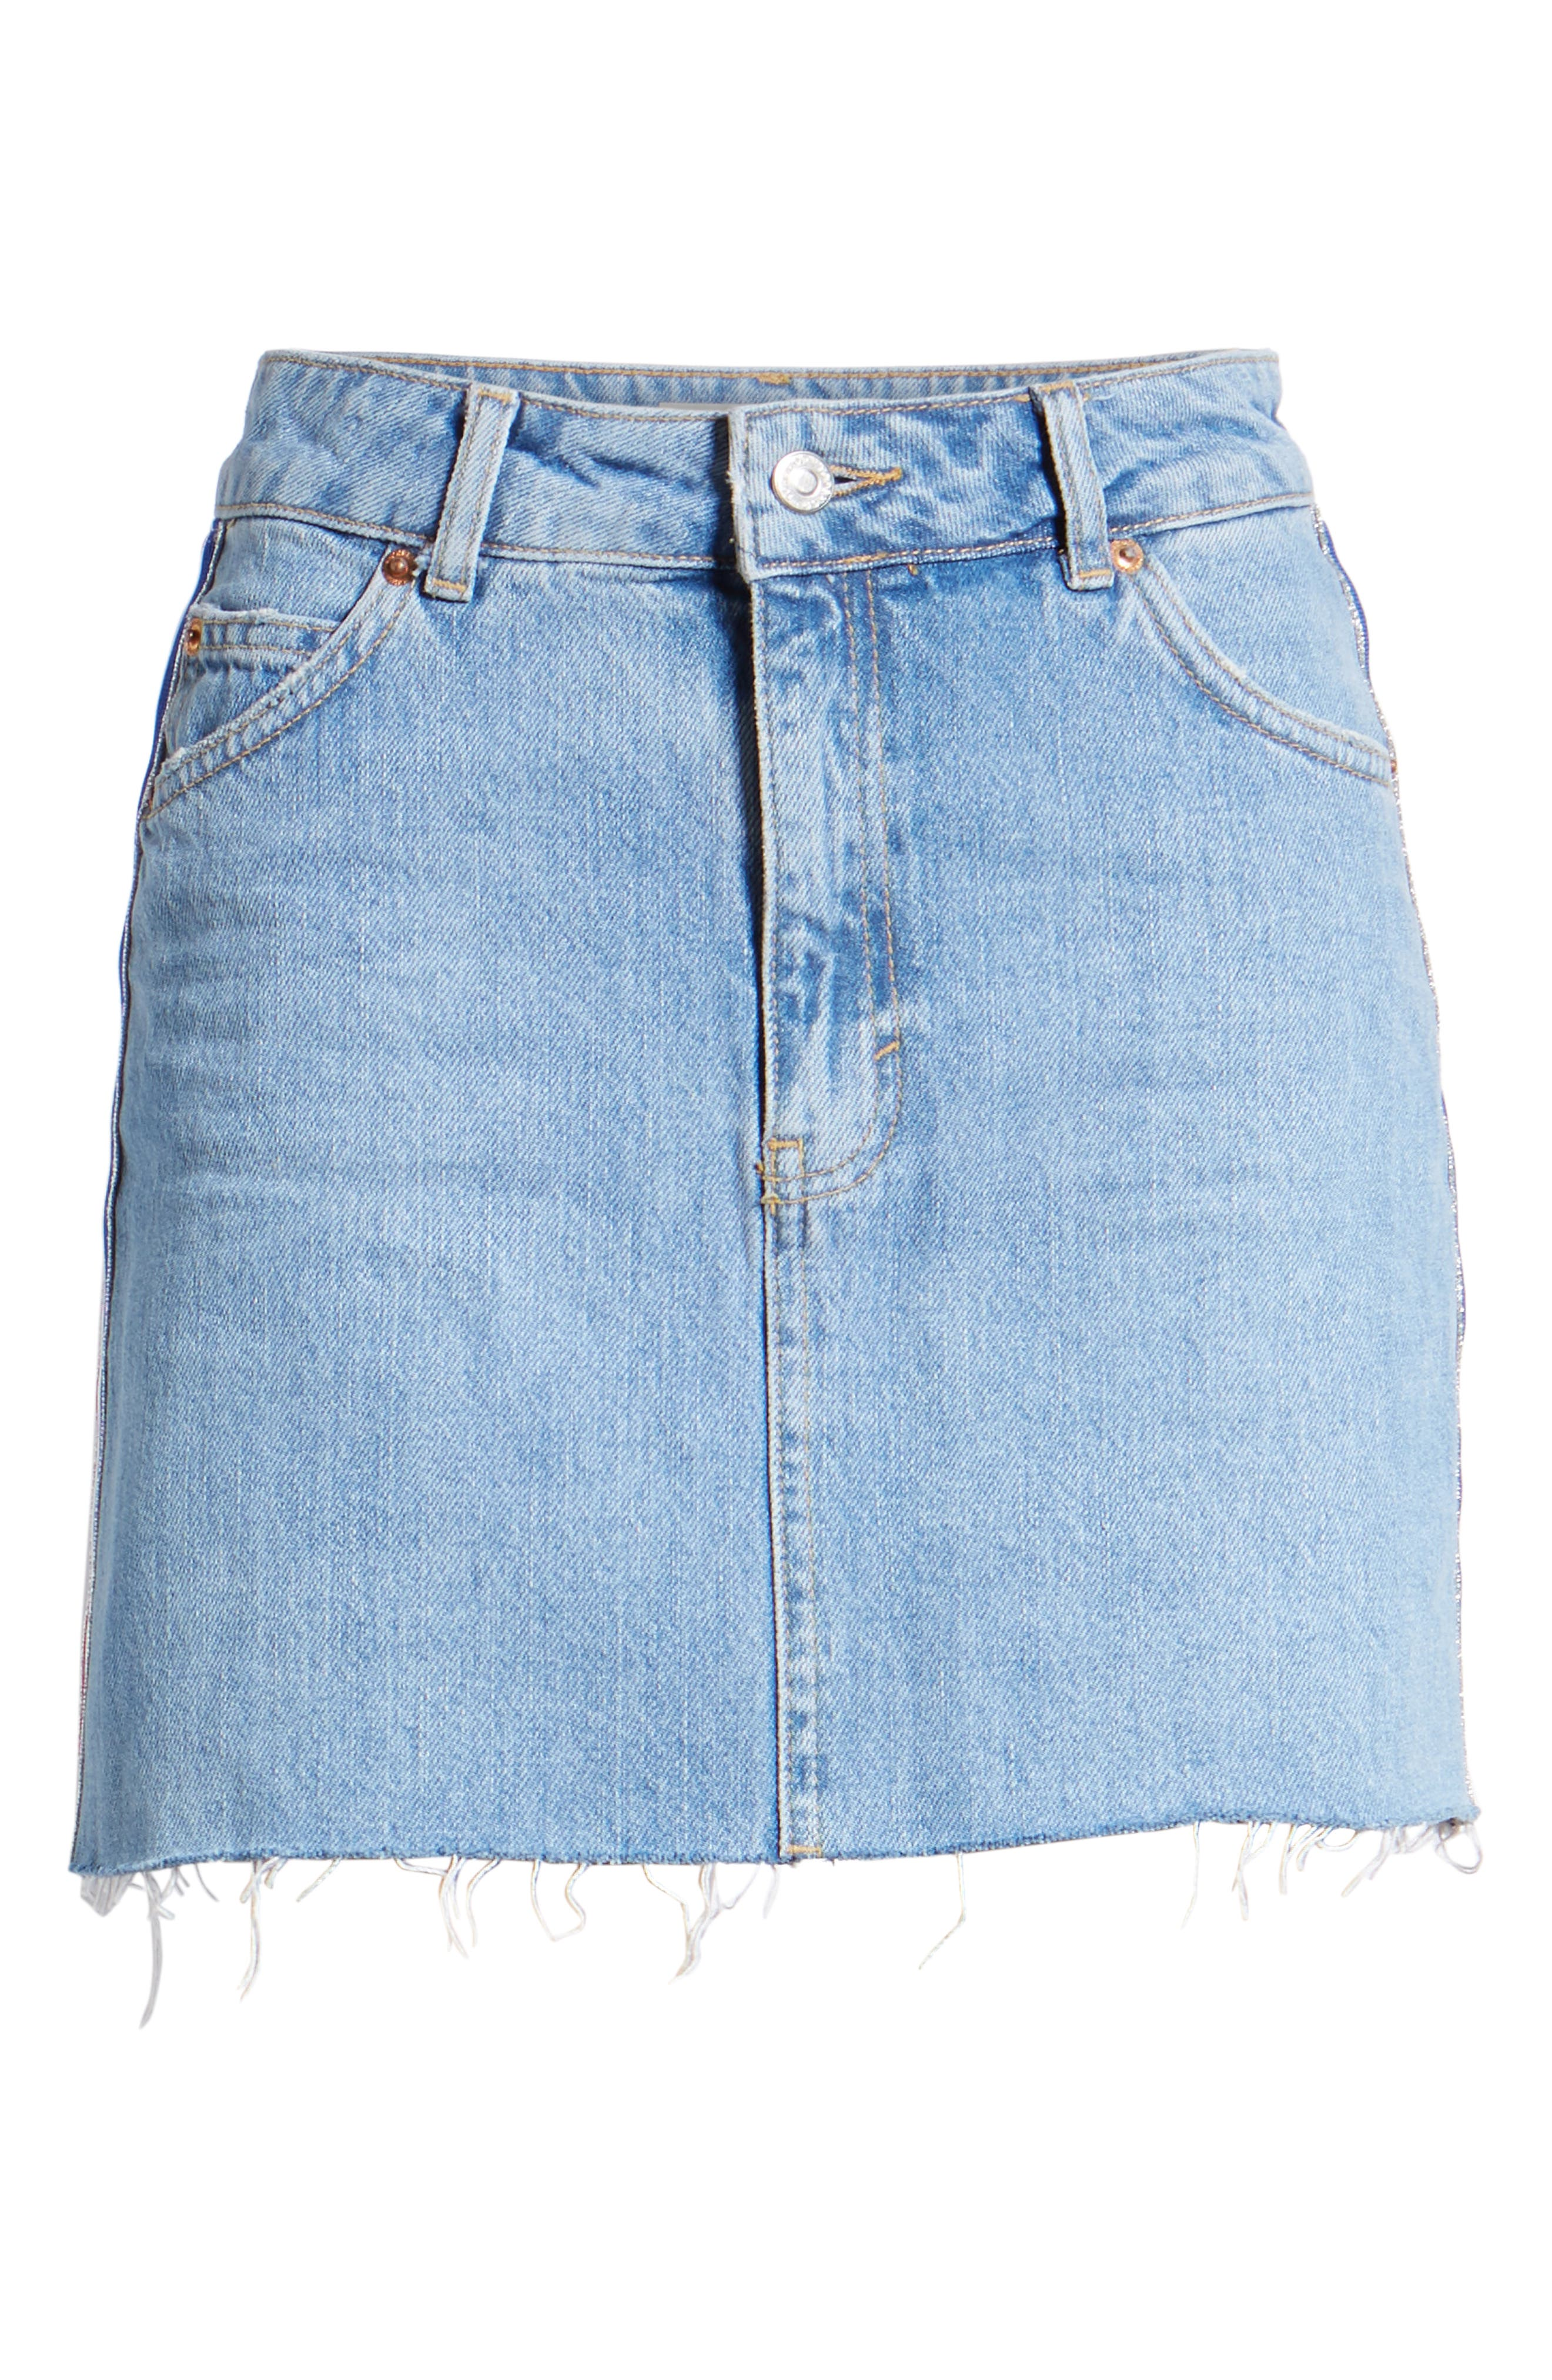 MOTO Stripe Denim Skirt,                             Alternate thumbnail 7, color,                             450